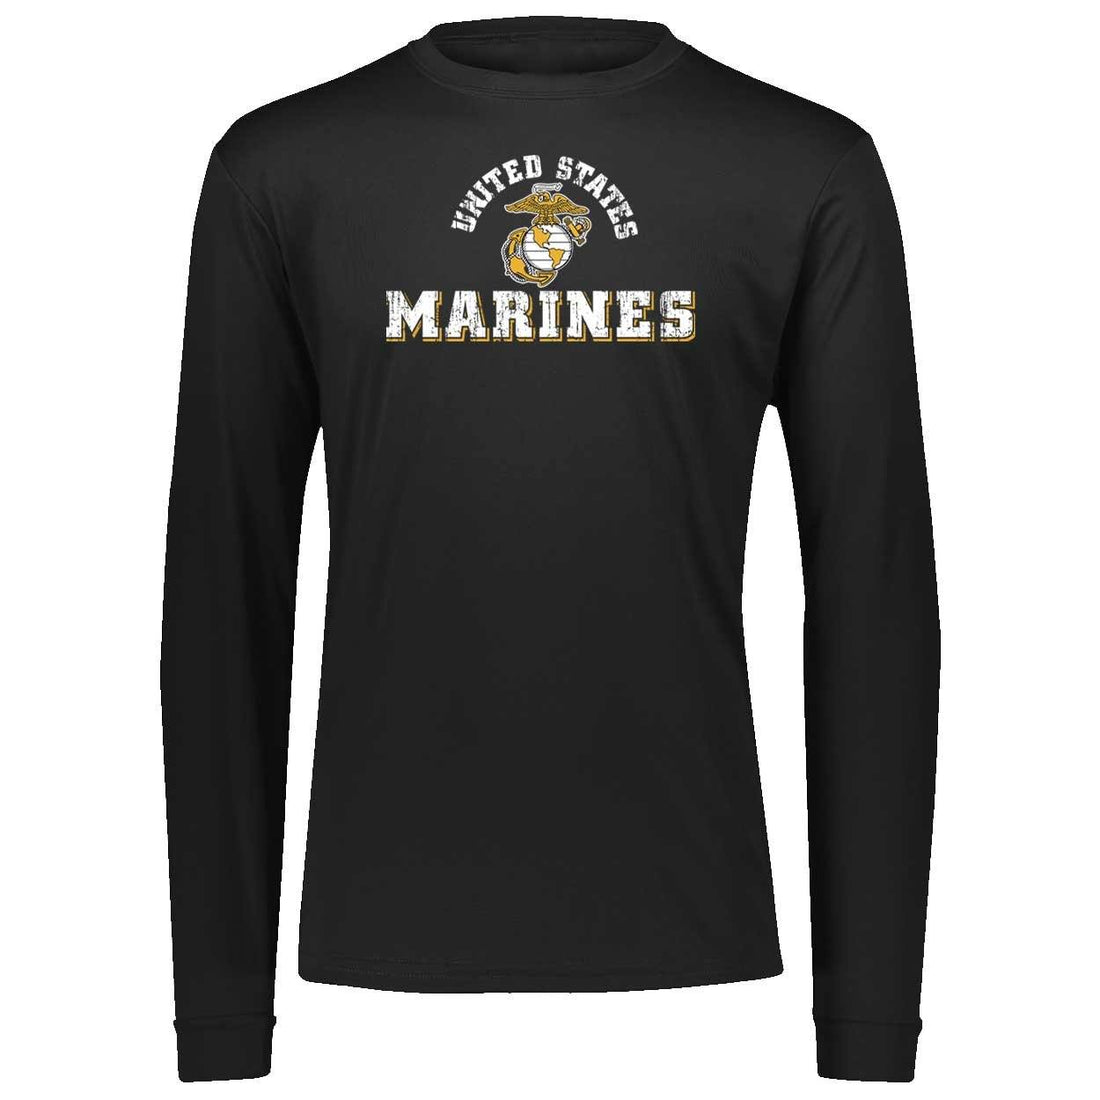 Dome Marines Performance Long Sleeve T-Shirt - Marine Corps Direct